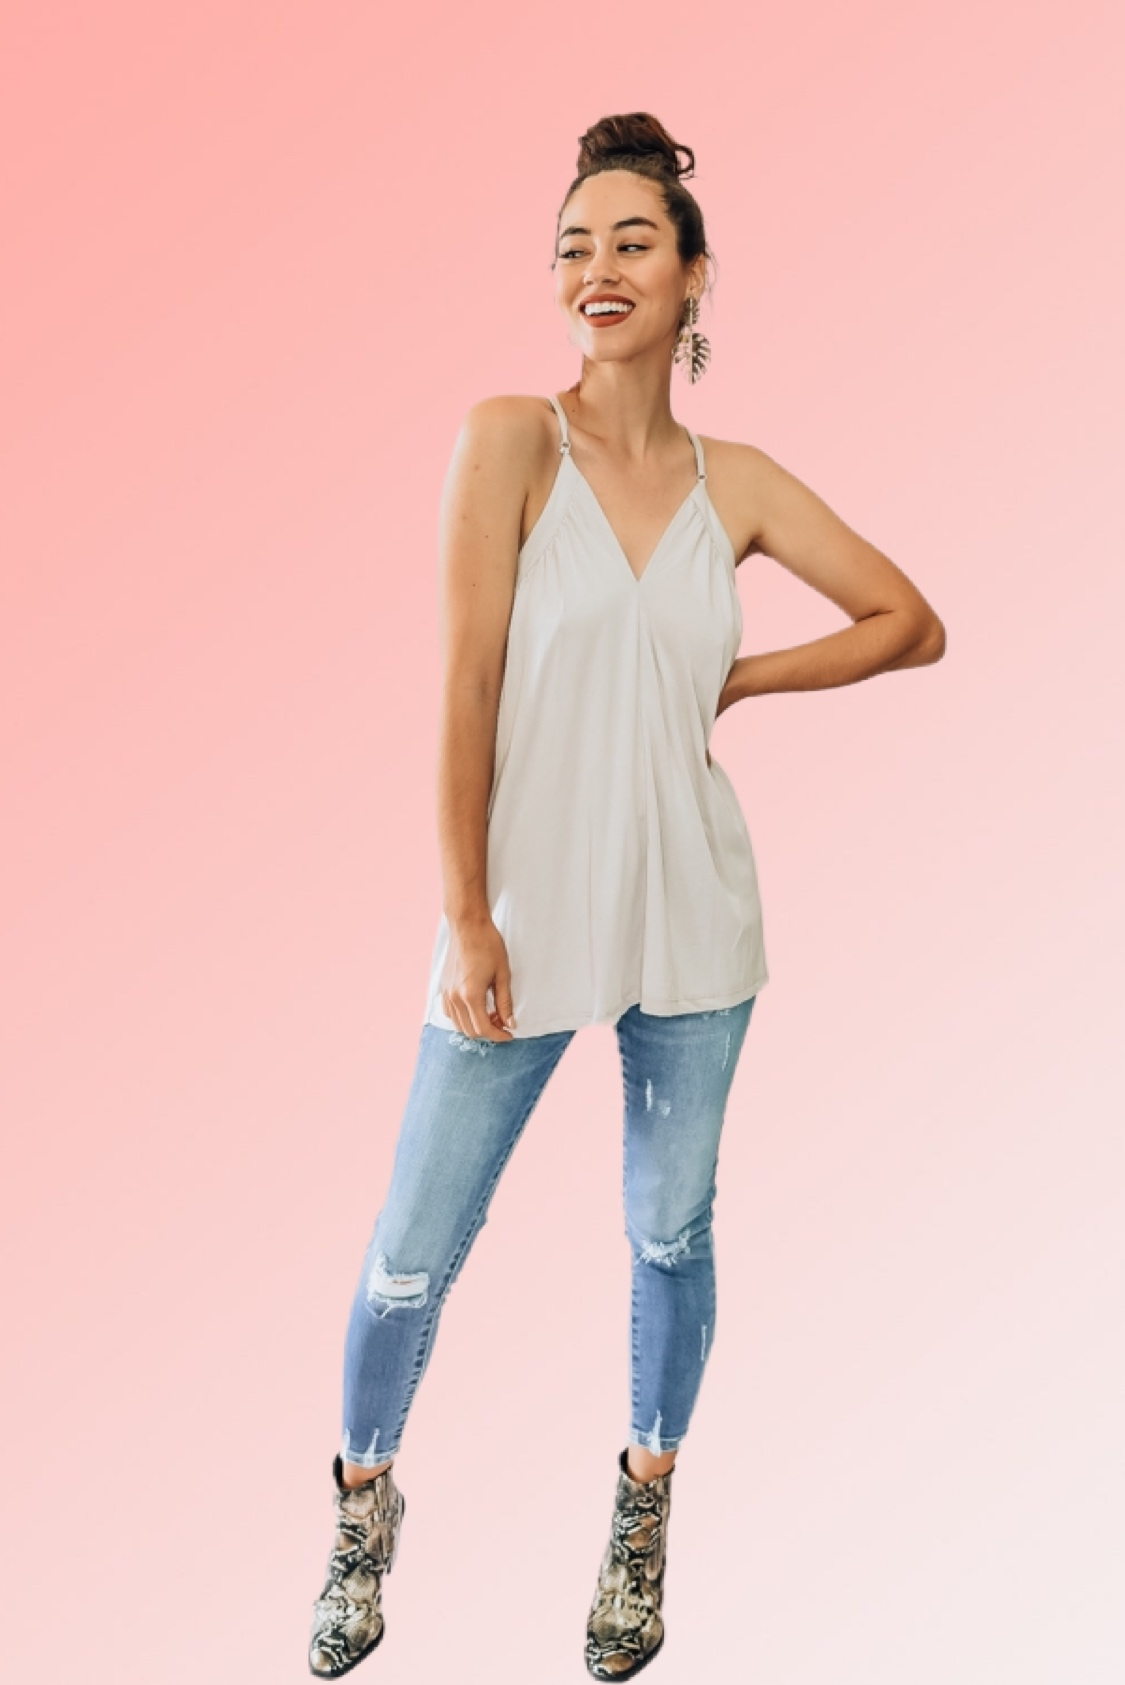 SLEEVELESS, RELAXED FIT, HALTER BACK HOOK CAMISOLE. AVAILABLE IN TWO COLORS – SHELL AND OLIVE. 73% BAMBOO, 27% POLYESTER. PIPER IS 5'4, SIZE 0 WEARING A SMALL, BACKWARDS. NIKI IS A SIZE 14, WEARING A LARGE. S 0-6 M 6-12 L 12-18